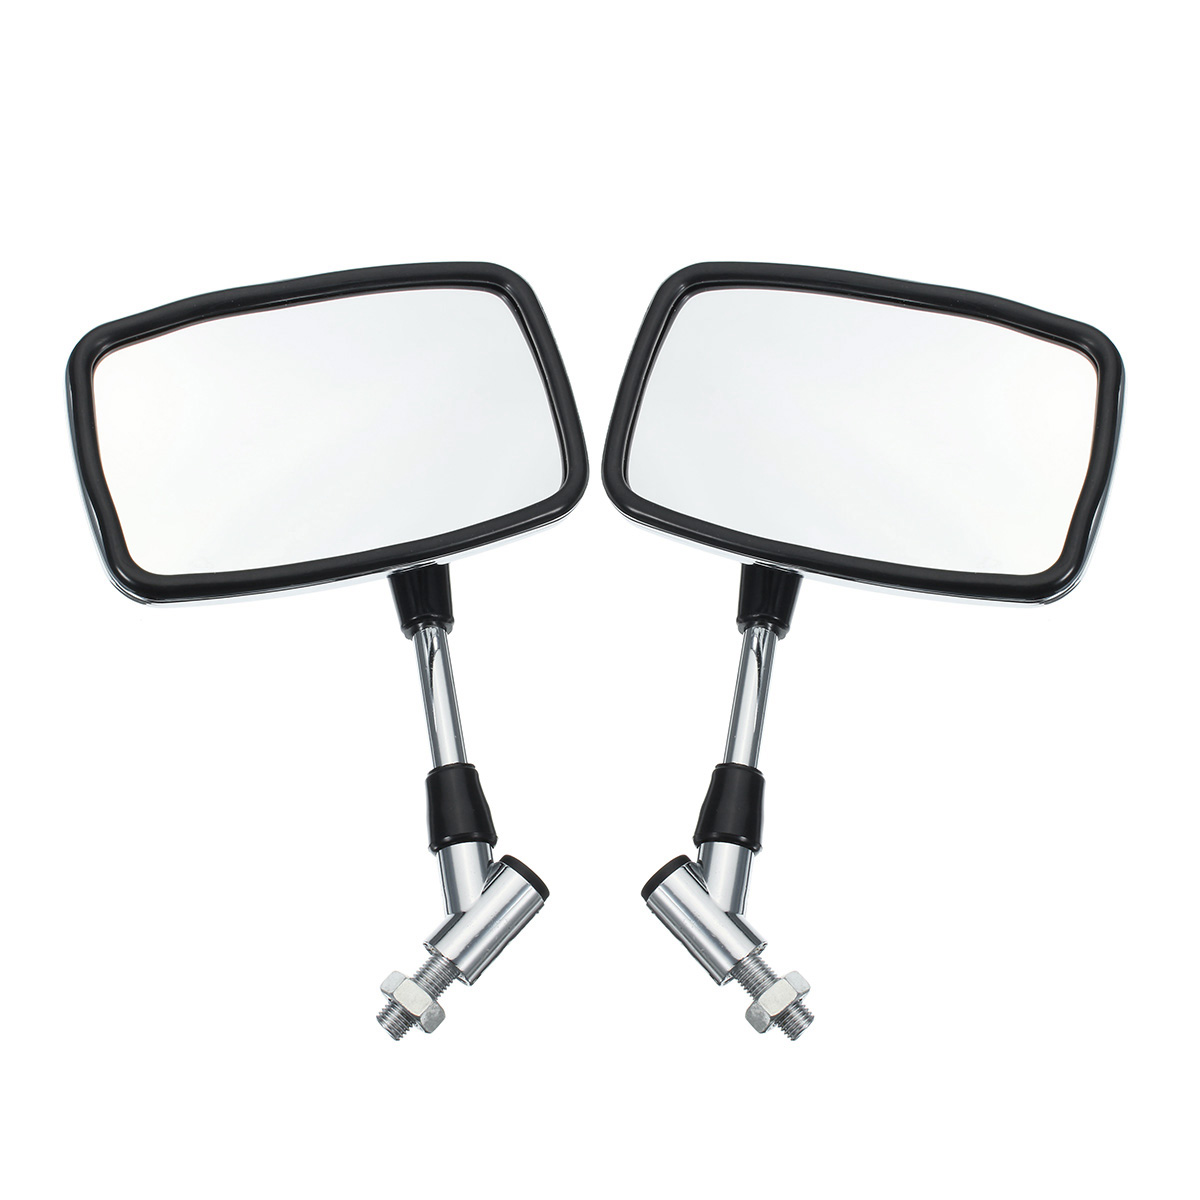 10mm Motorcycle Rear View Mirrors For Yamaha/Suzuki/Honda